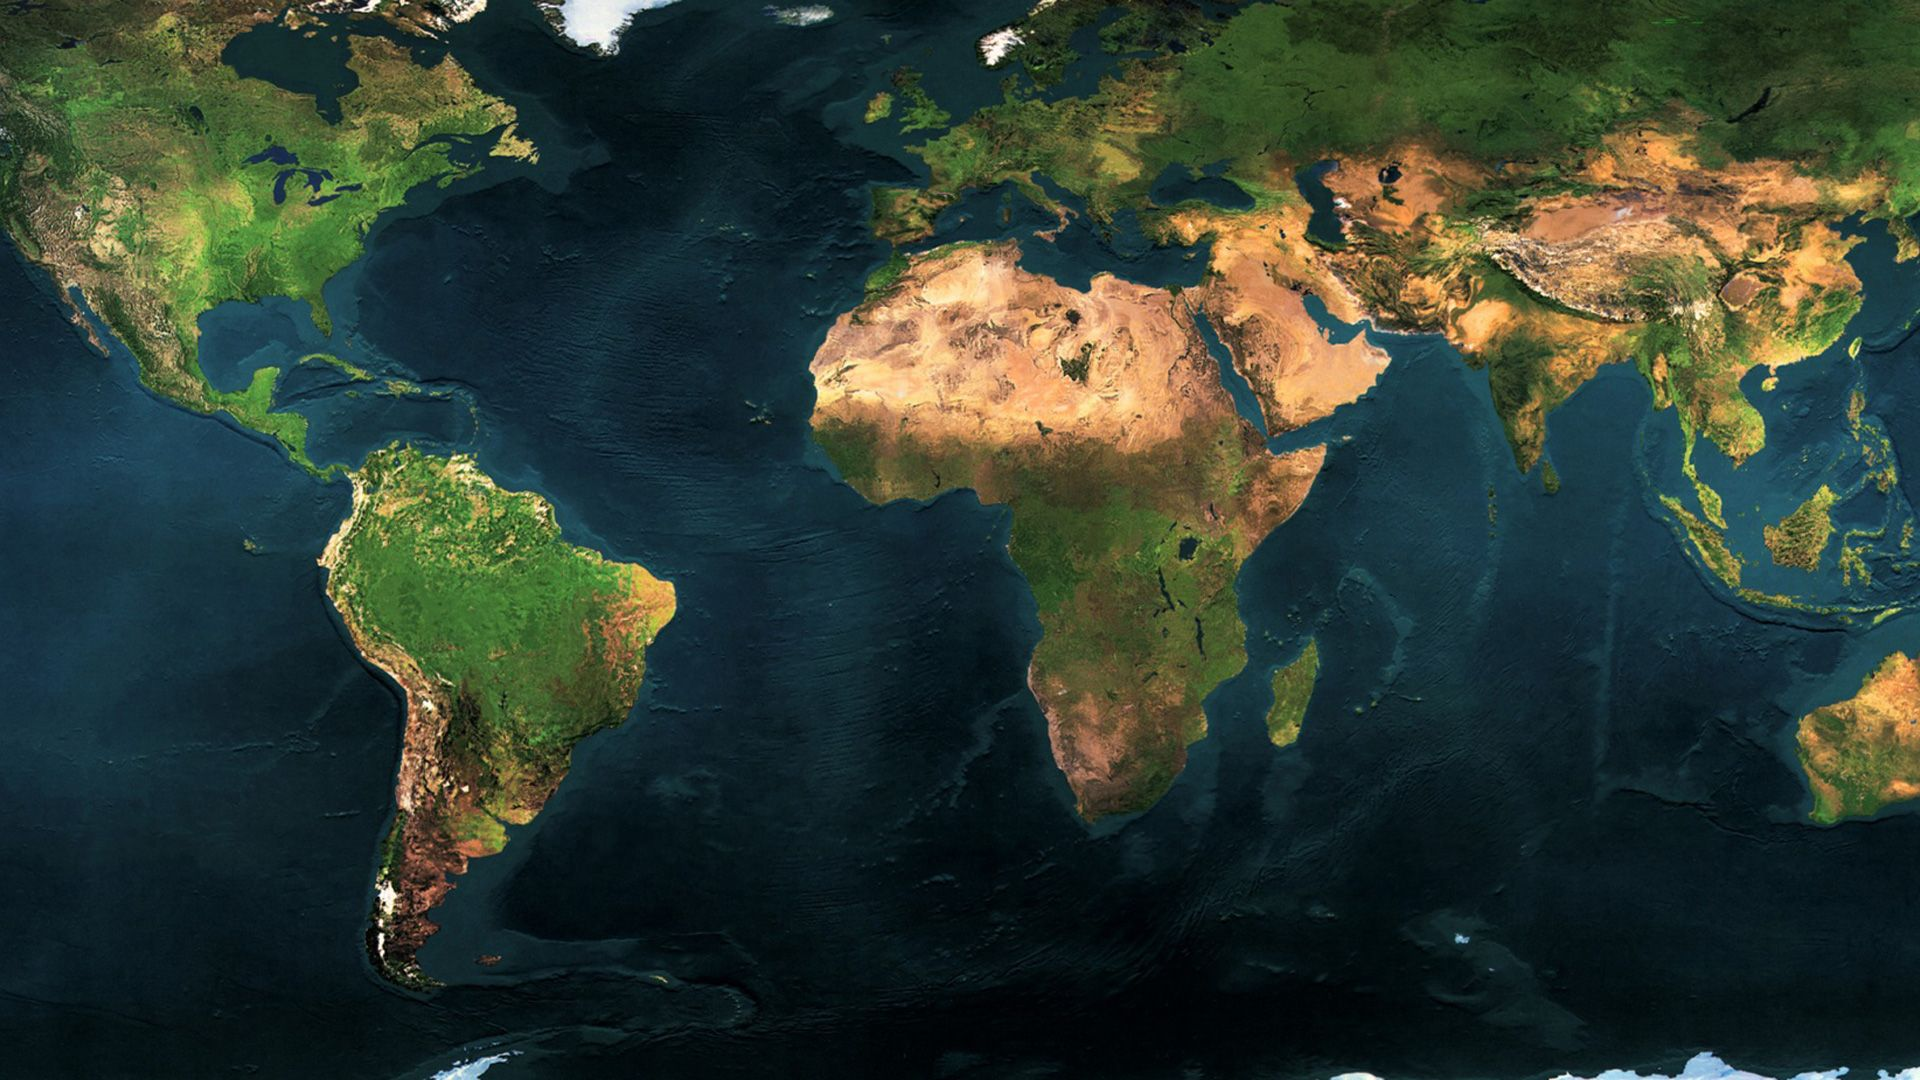 World Map Wallpapers High Resolution Wallpaper Cave Beautiful - Earth world map